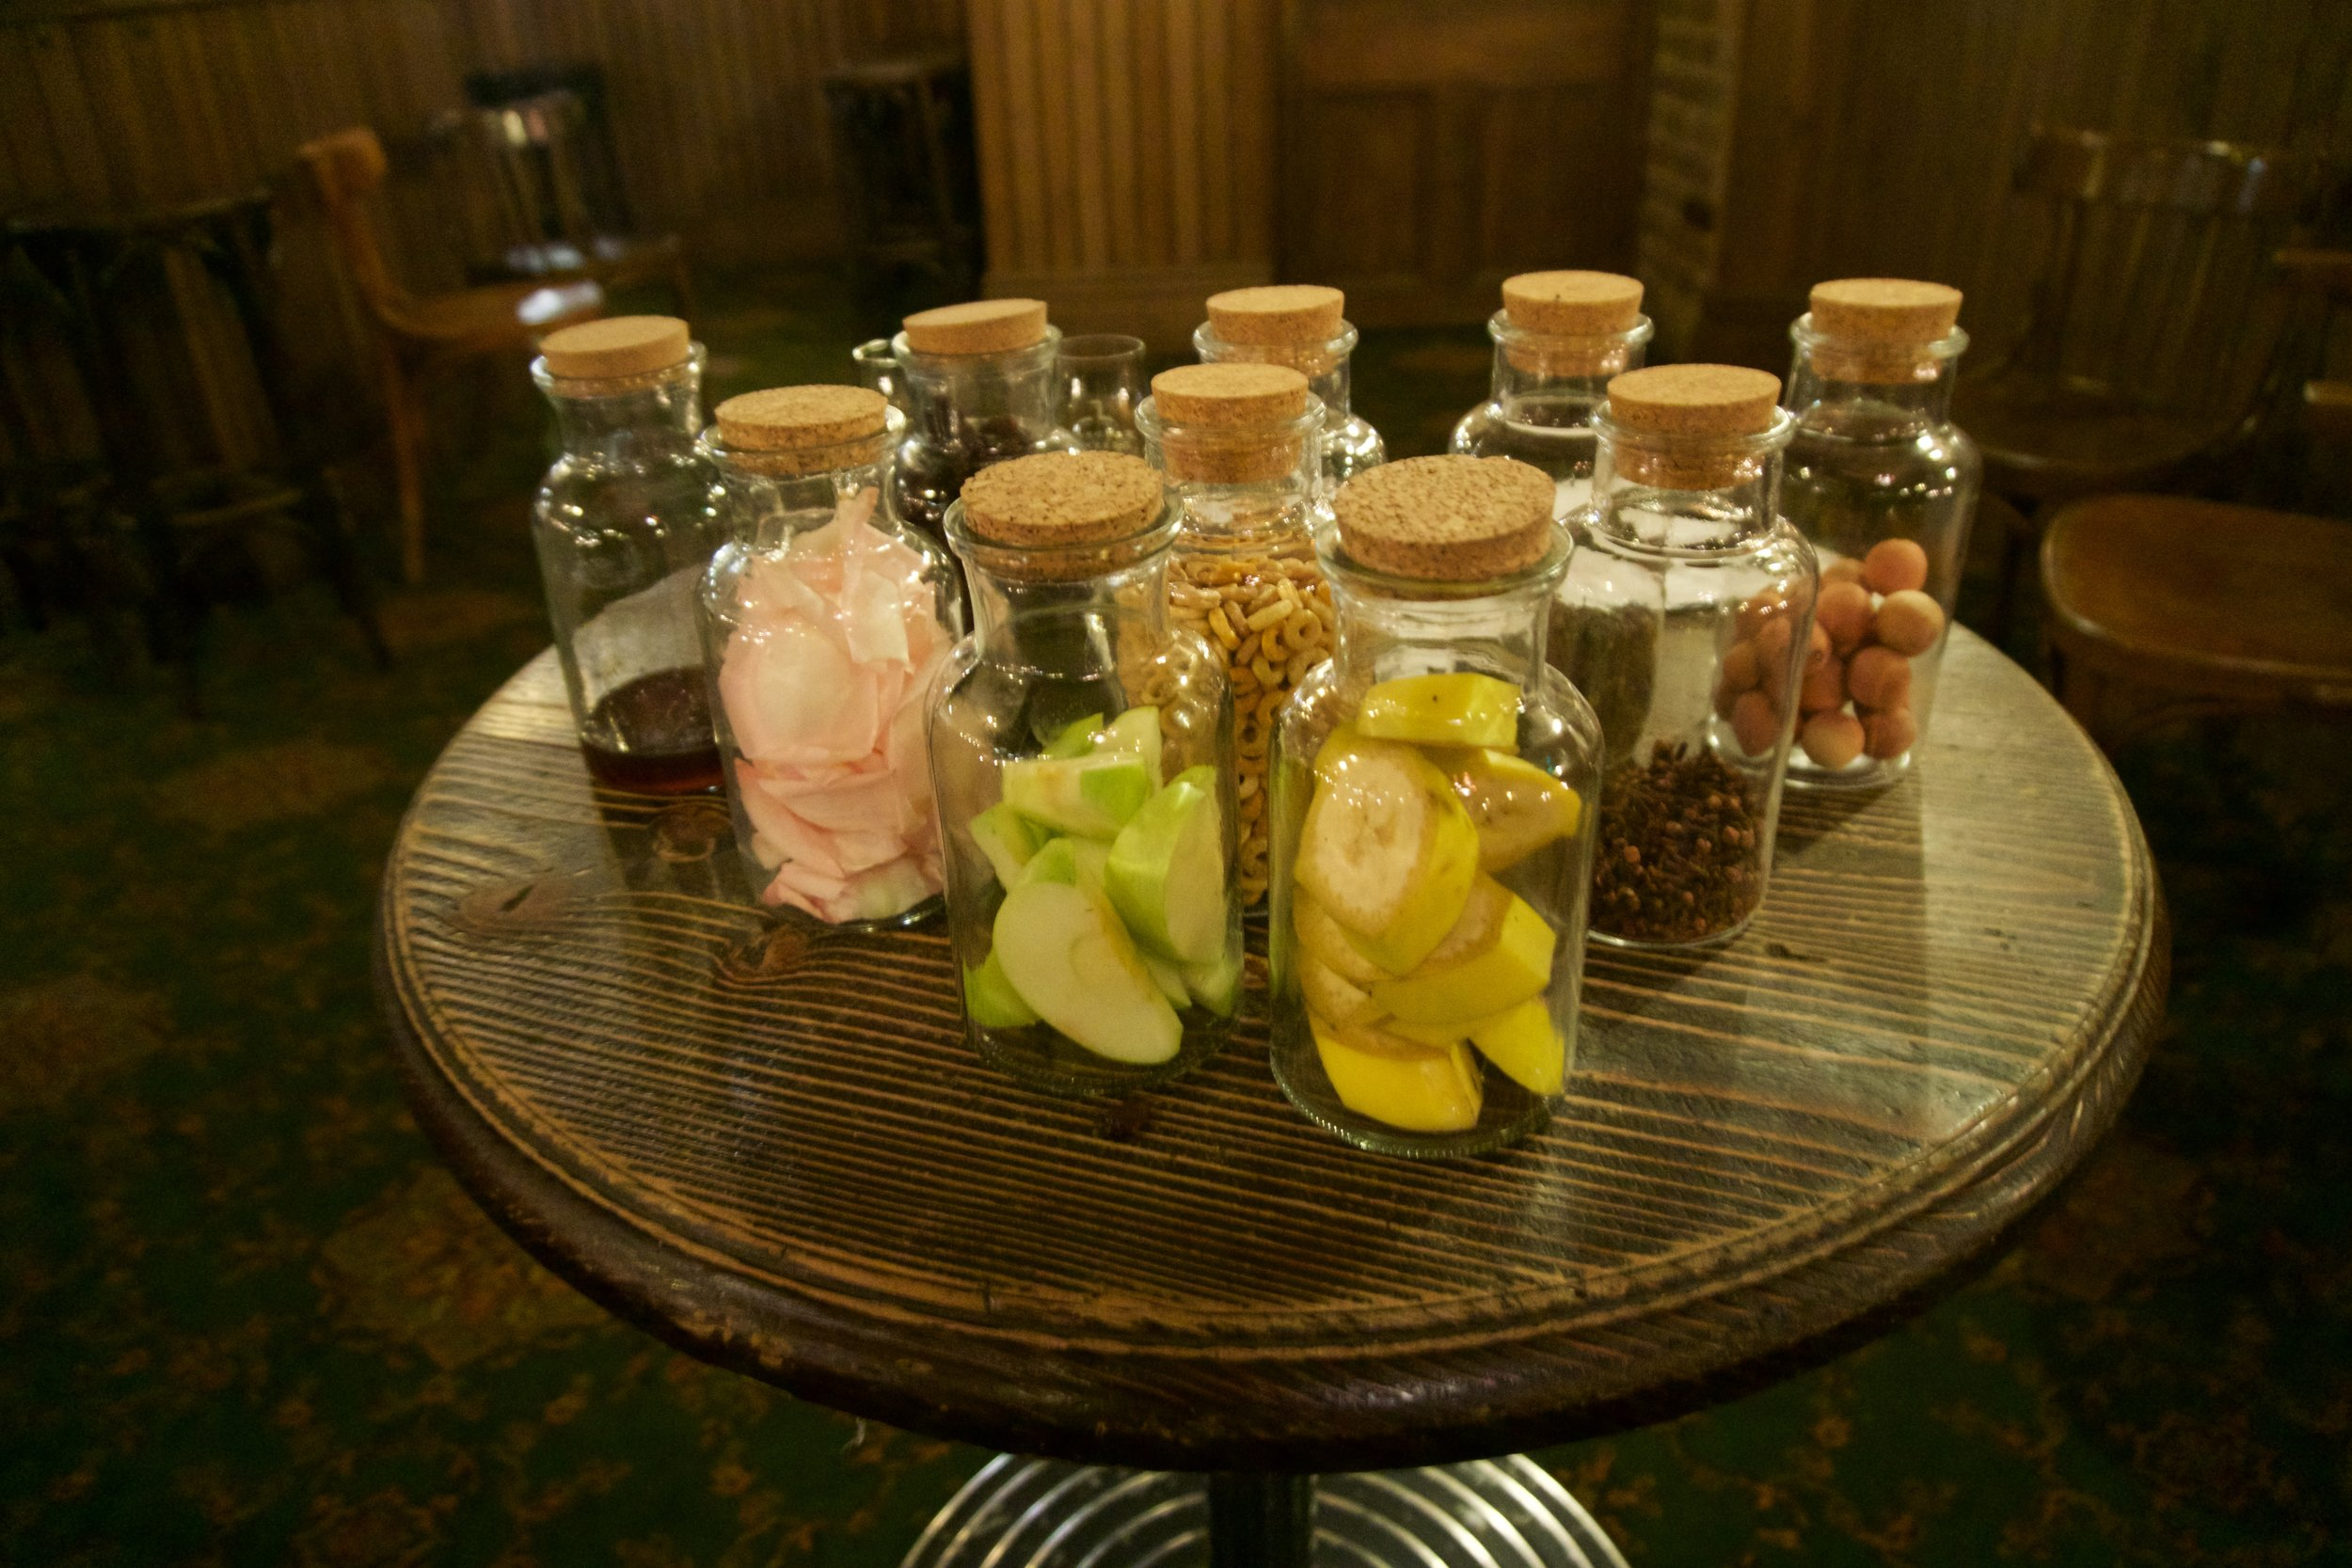 A sample of the materials used by the sensory panel to help identify different flavours in the whiskey - rose petals, cloves...even cedarwood balls.